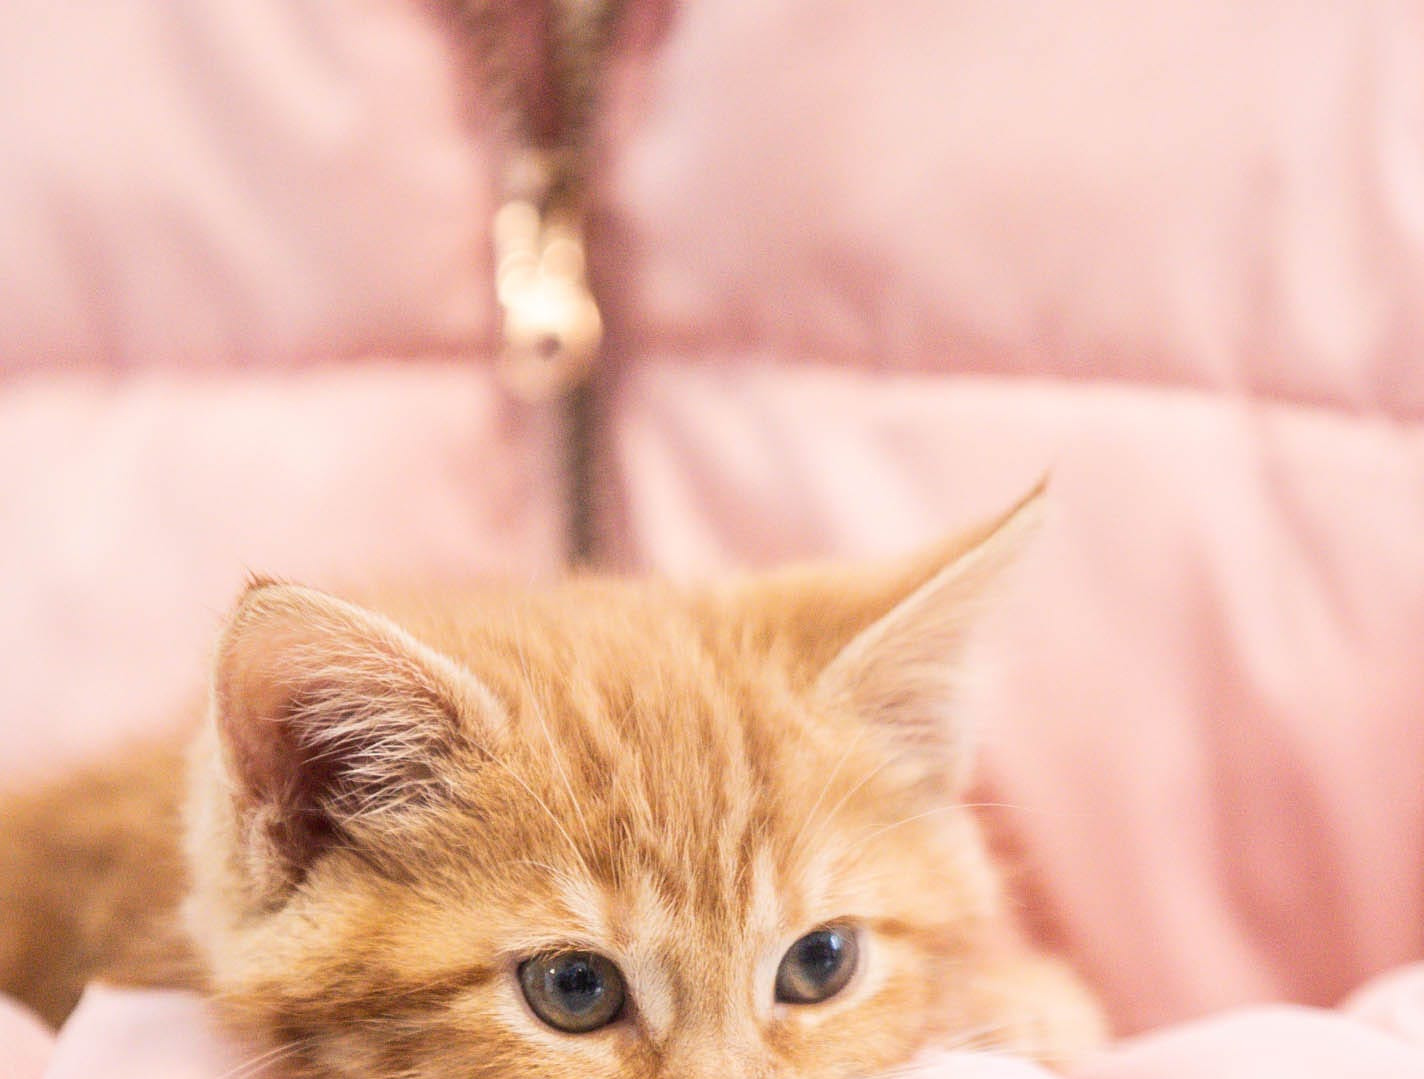 Ava Versaw cuddles a orange kitten at Indy Humane during their Puppy and Kitten Baby Shower on Sunday, March 10, 2019. The event educates families on Indy Humane's foster care program, as Fosters are needed in the spring during puppy and kitten season.